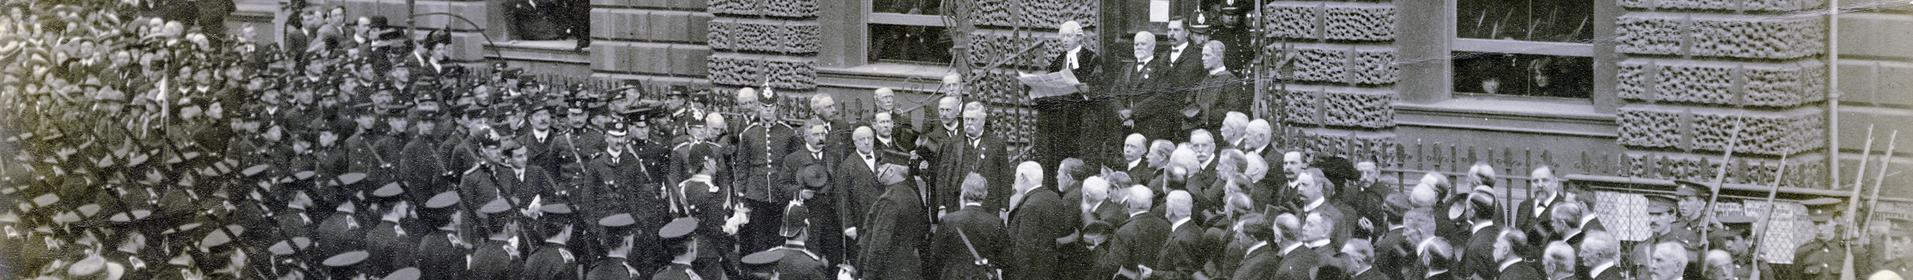 Proclamation of King George V at Guildhall 1910